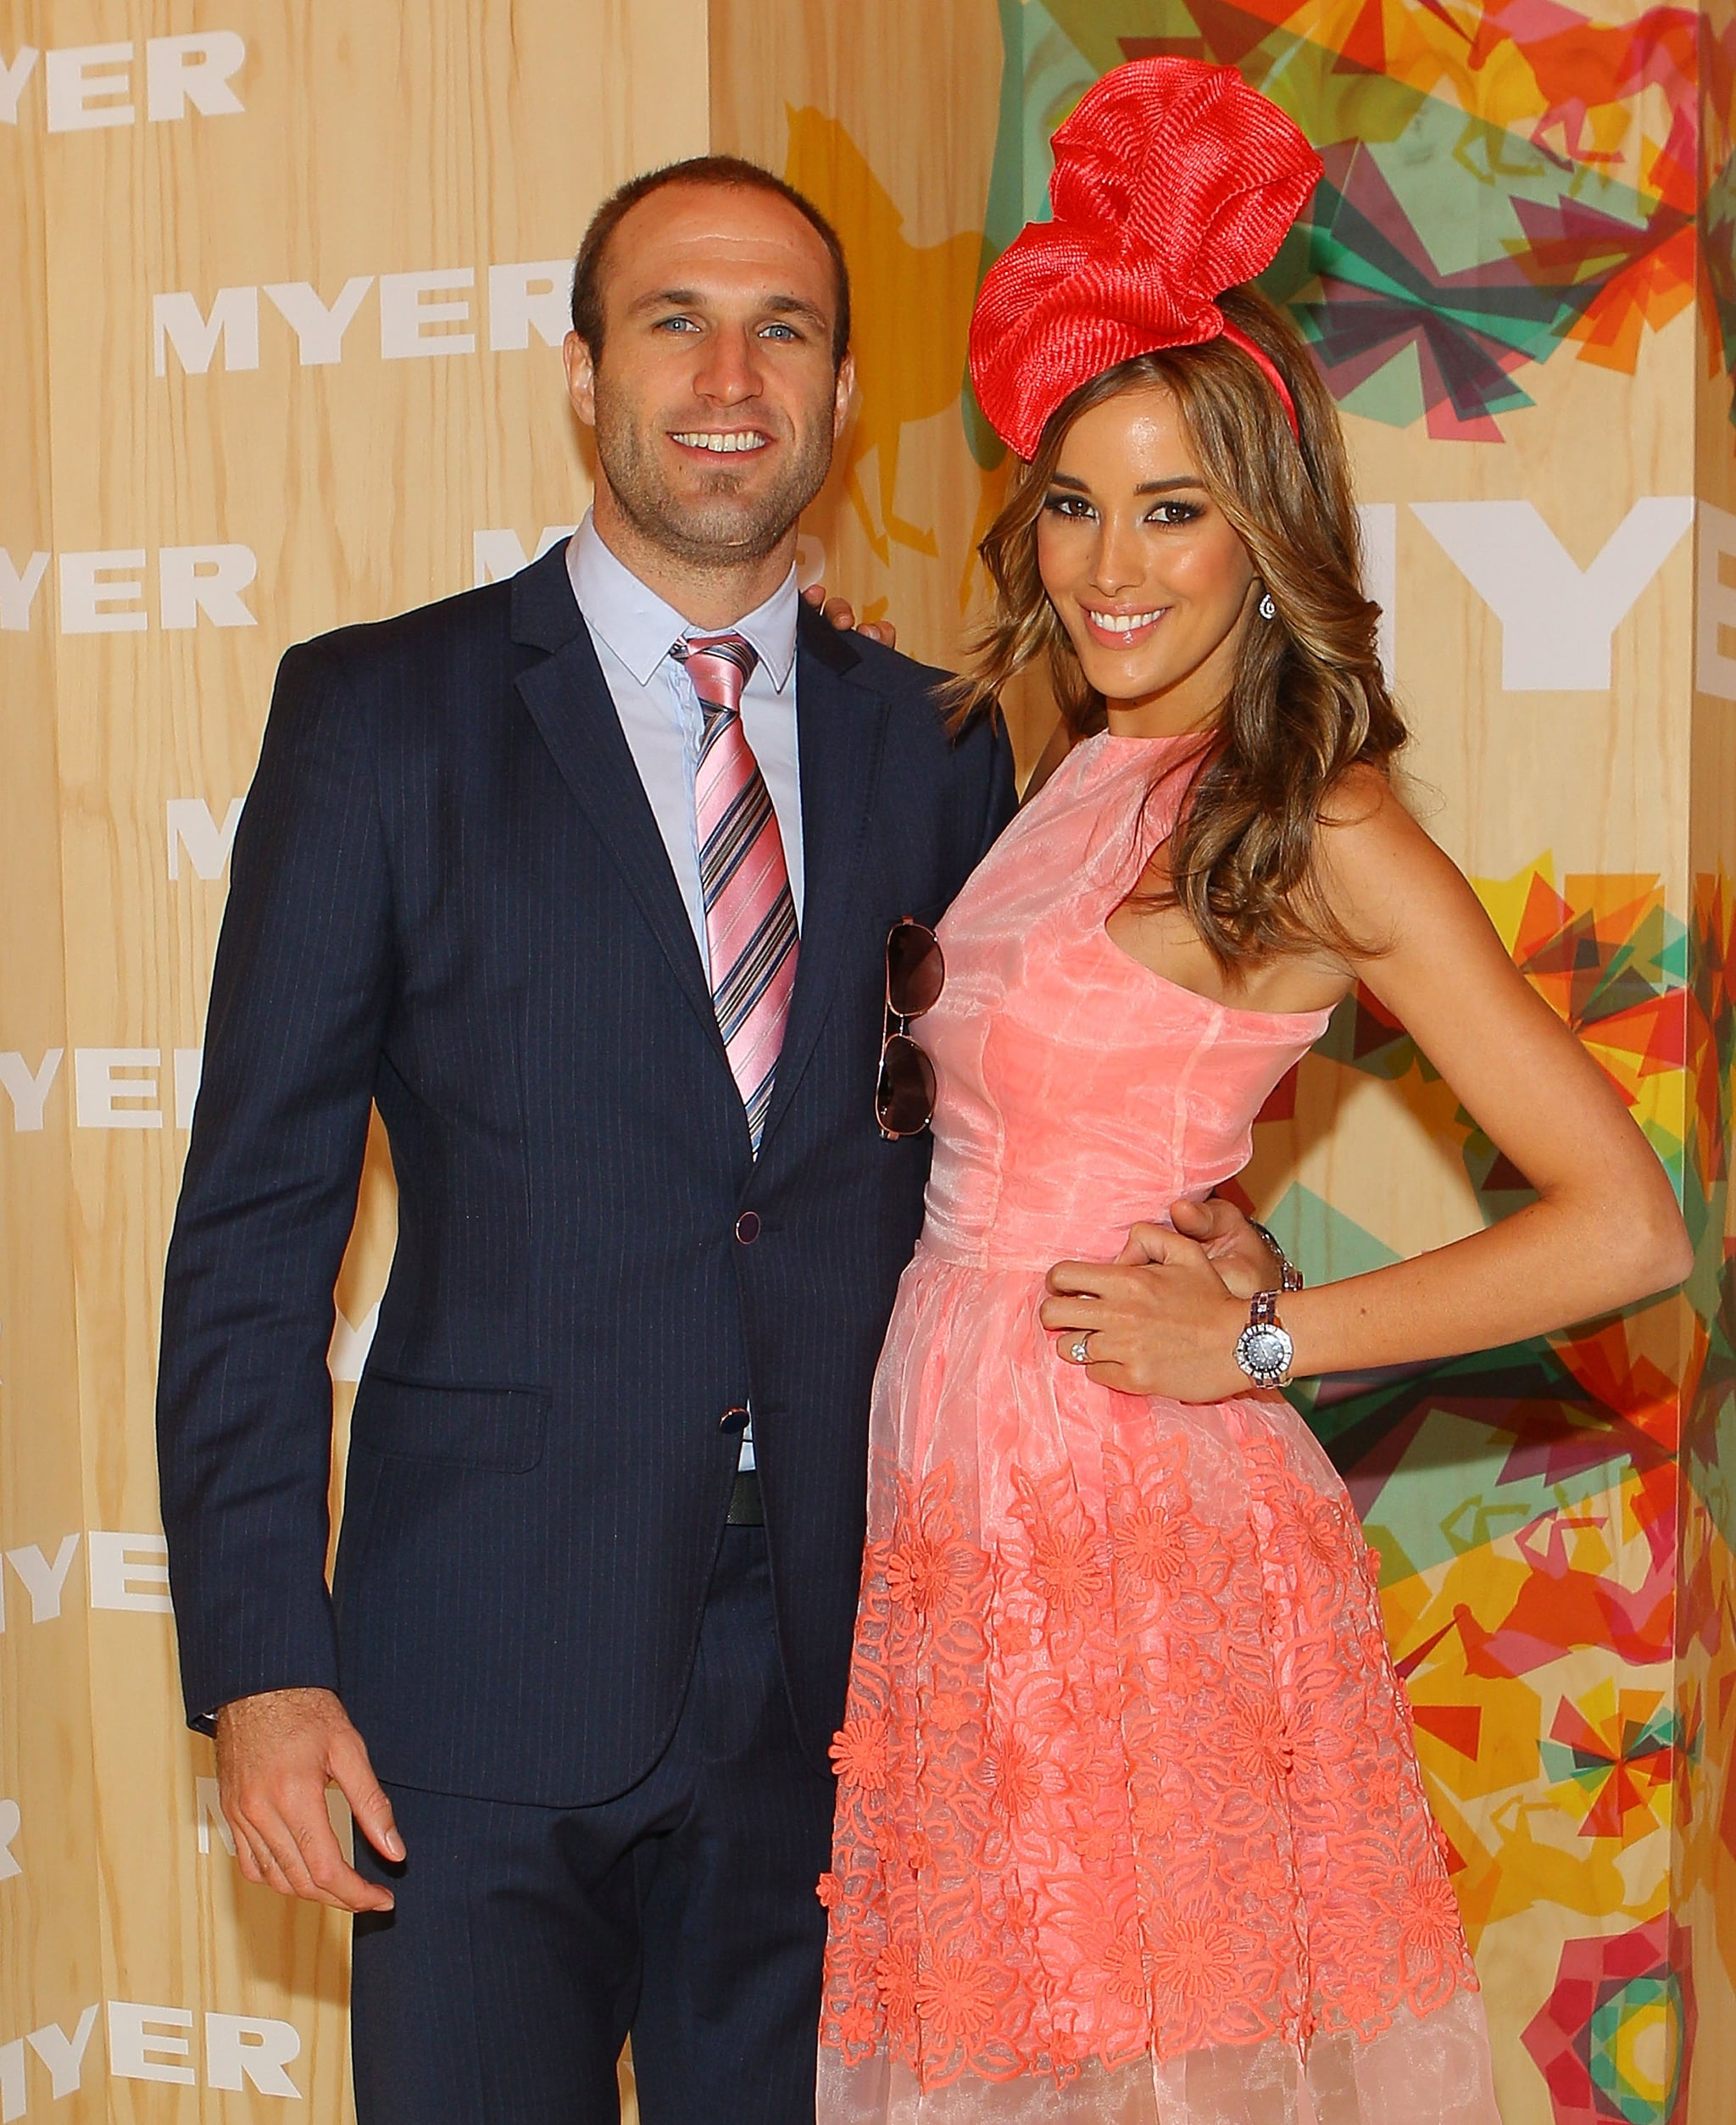 Cute couple! Chris Judd and Rebecca Twigley look loved up. Aww.